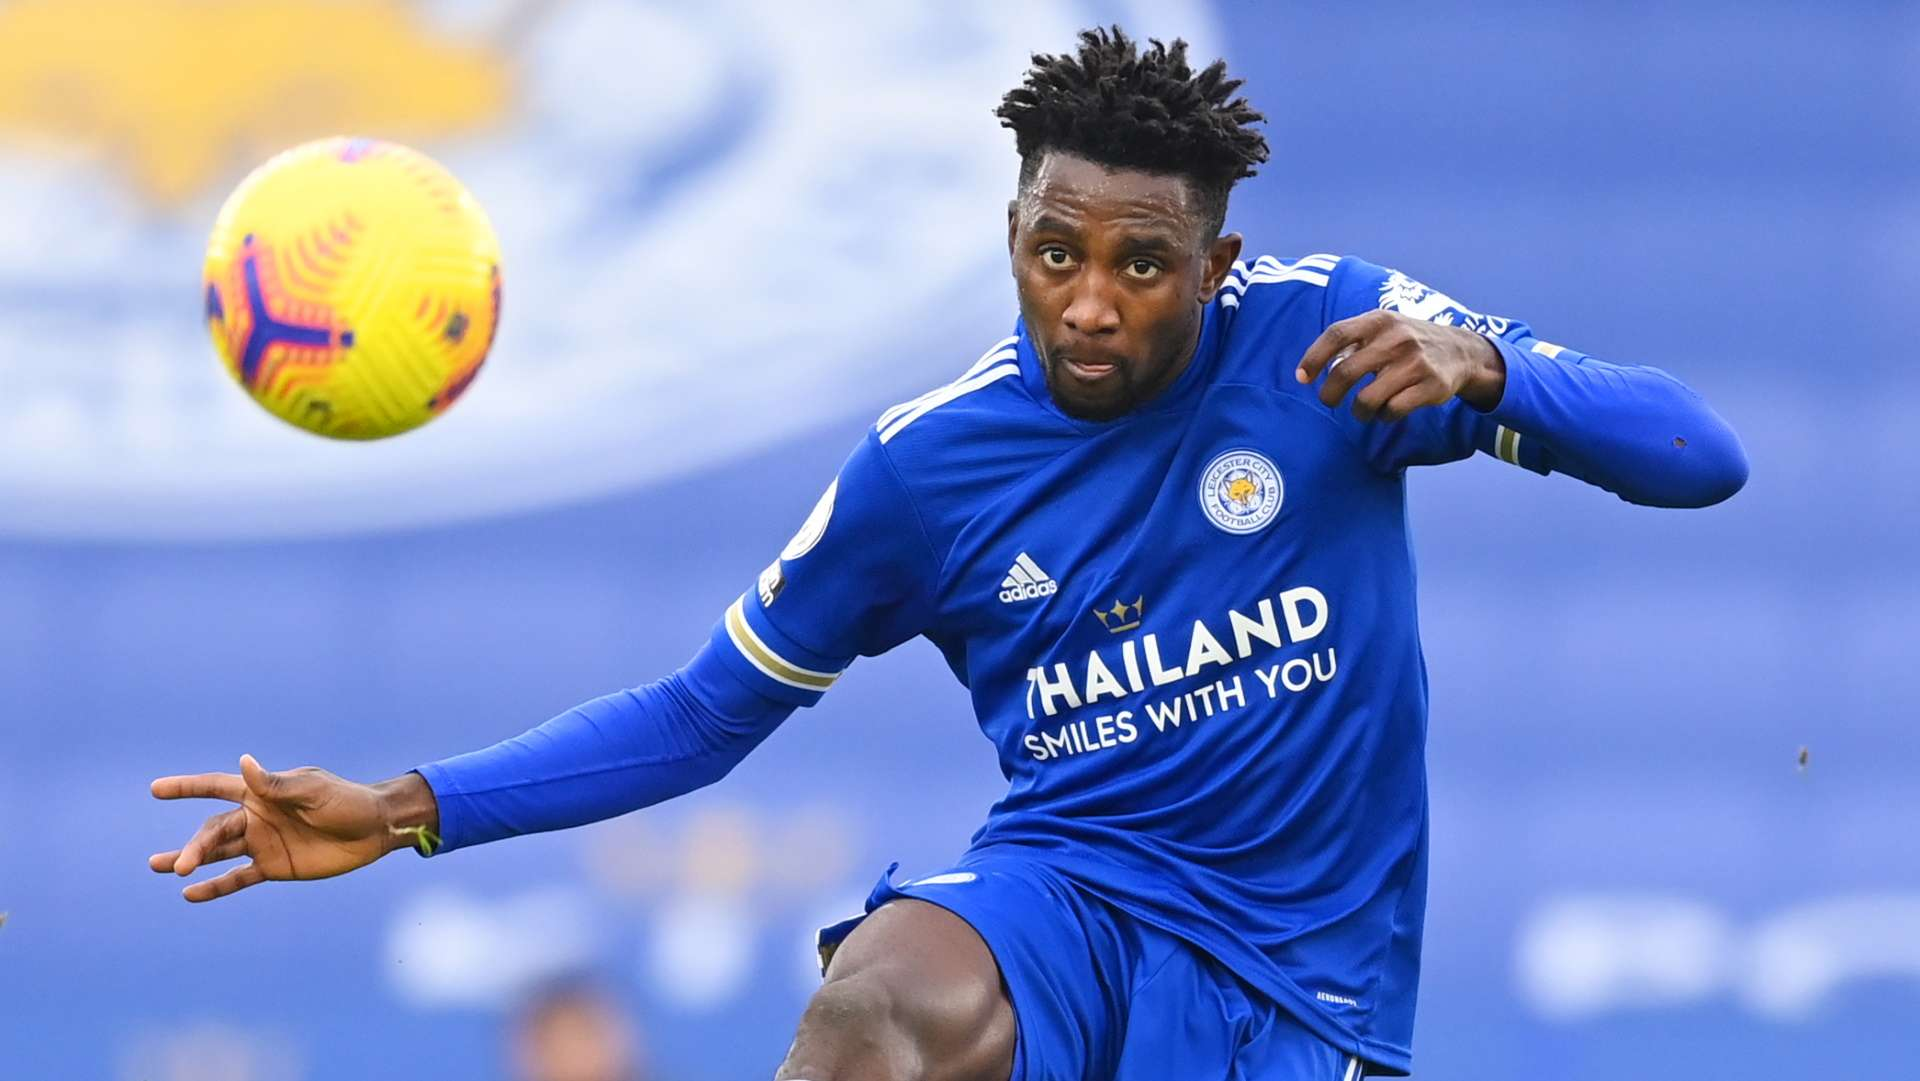 Wilfred Ndidi: What to expect in 2021? | Goal.com